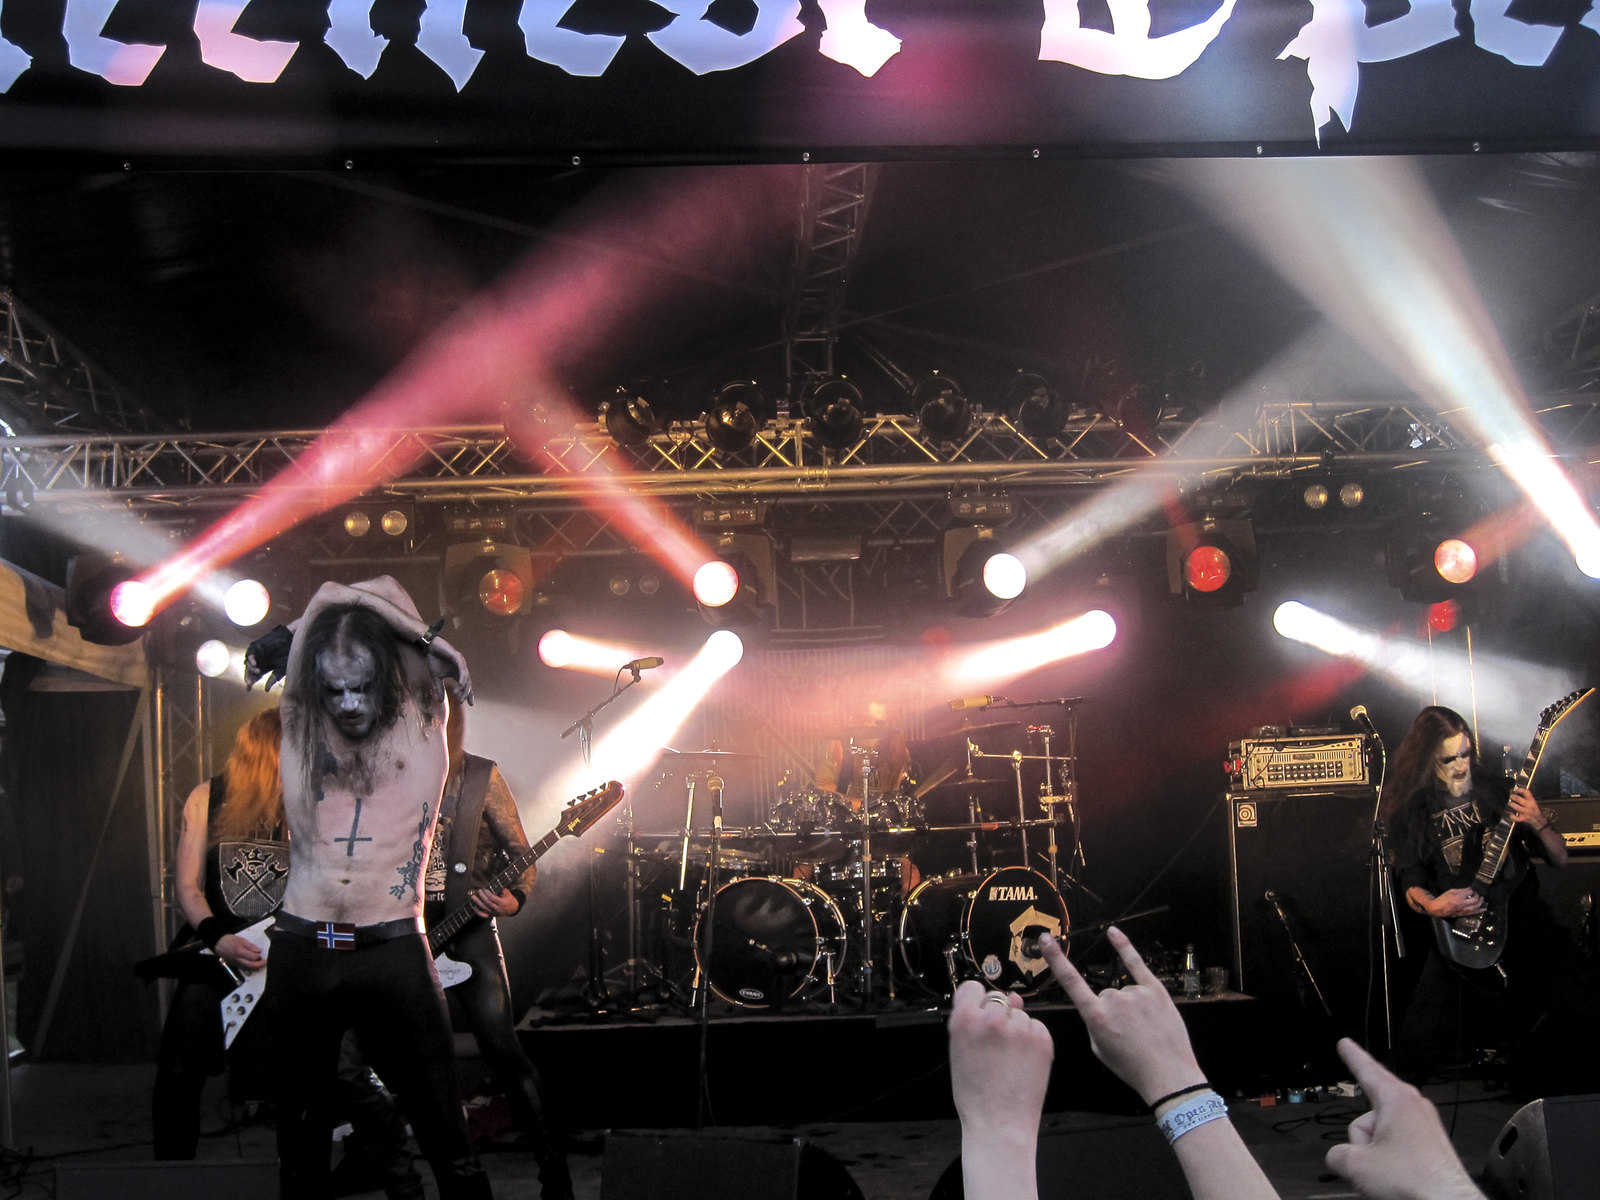 steelfest open air, finnish metal festivals, finnish metal events, taake, norwegian black metal